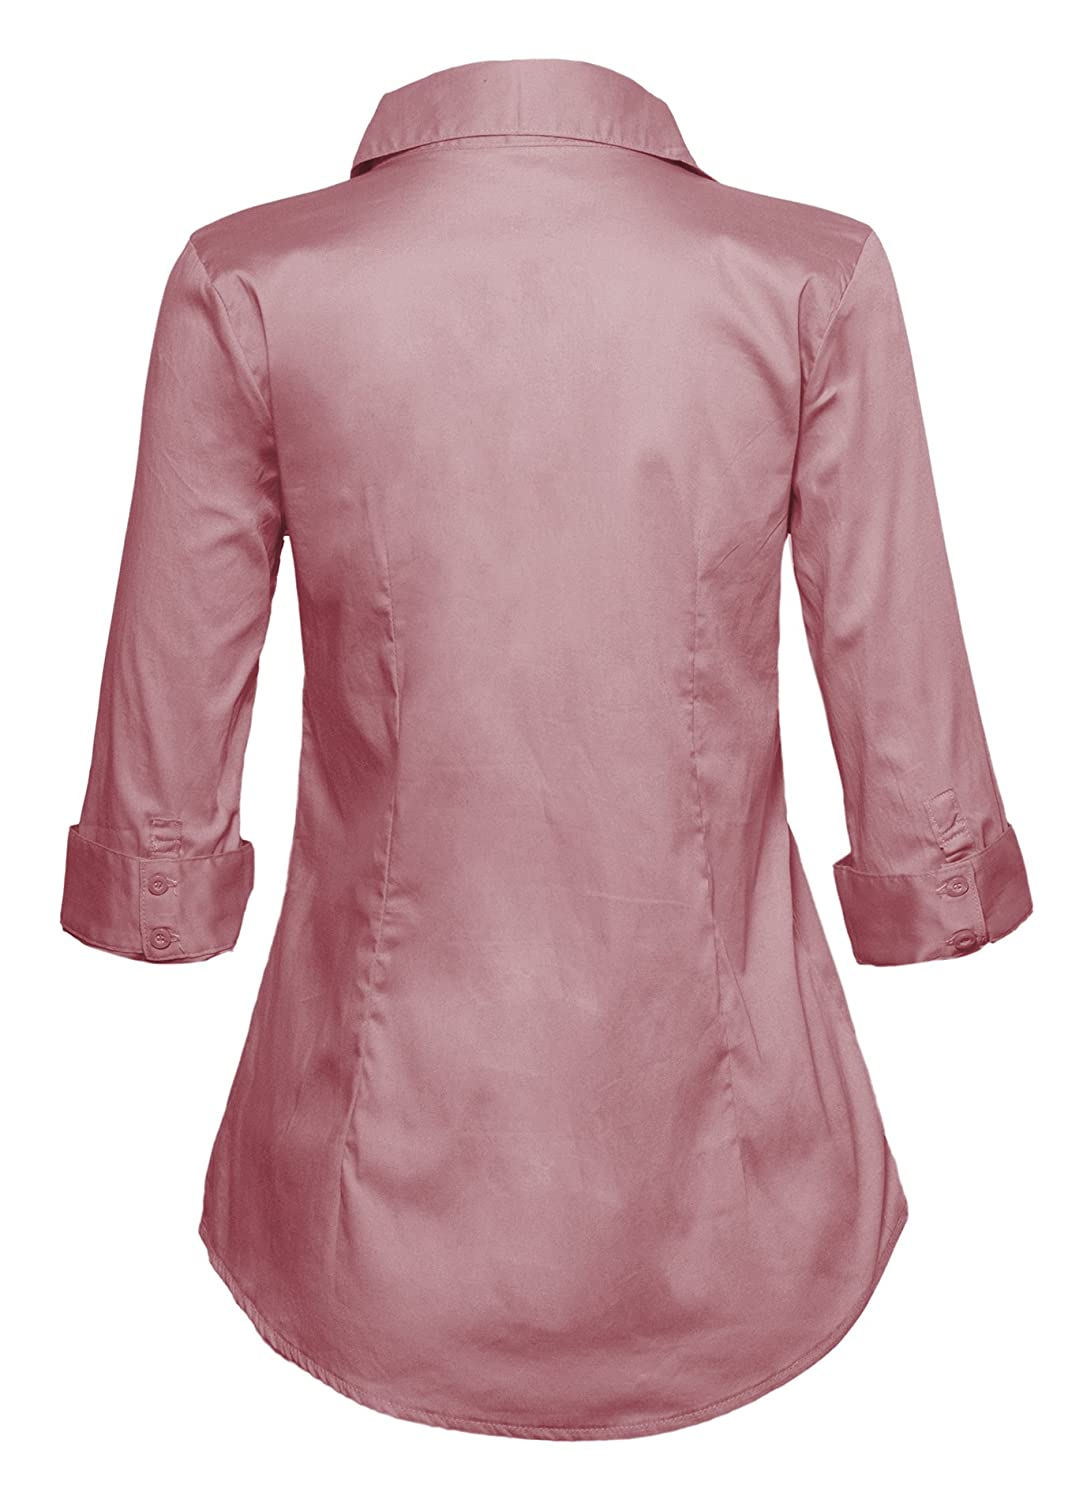 5da87d1b0bf9 Le3no Womens Tailored Long Sleeve Button Down Shirt With Stretch ...